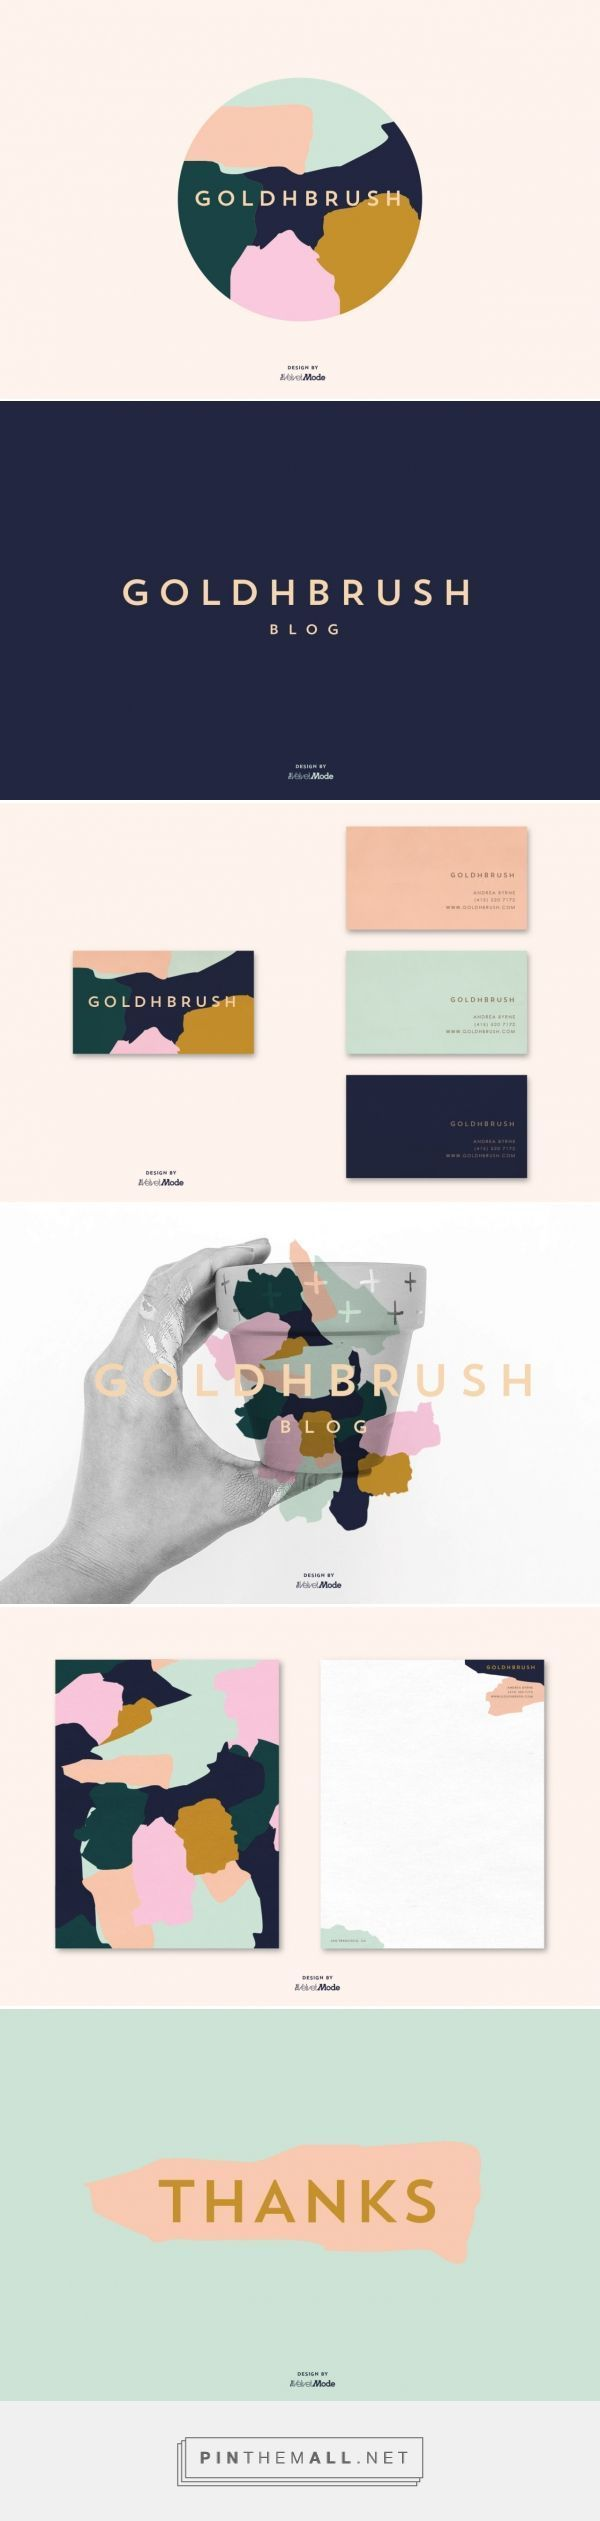 Branding for Goldhbrush Blog by The Velvet Mode in San Francisco. davelvetmode.tumblr.com/